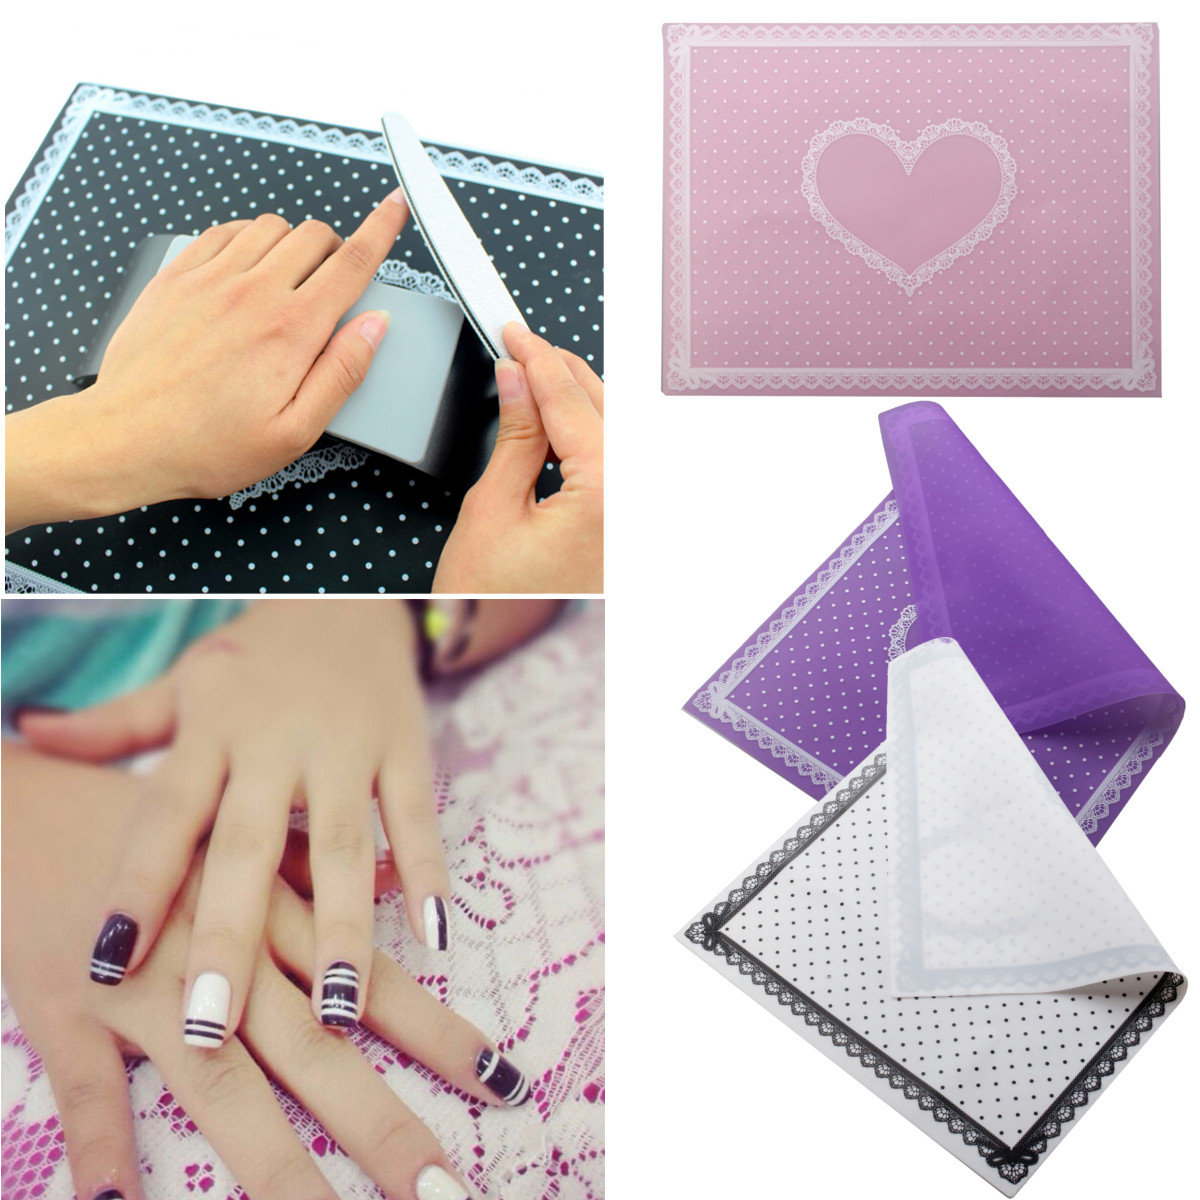 Silicon Lace Polka Dot Heart Pattern Nail Art Table Mat Pad Manicure Tool 3 Colors